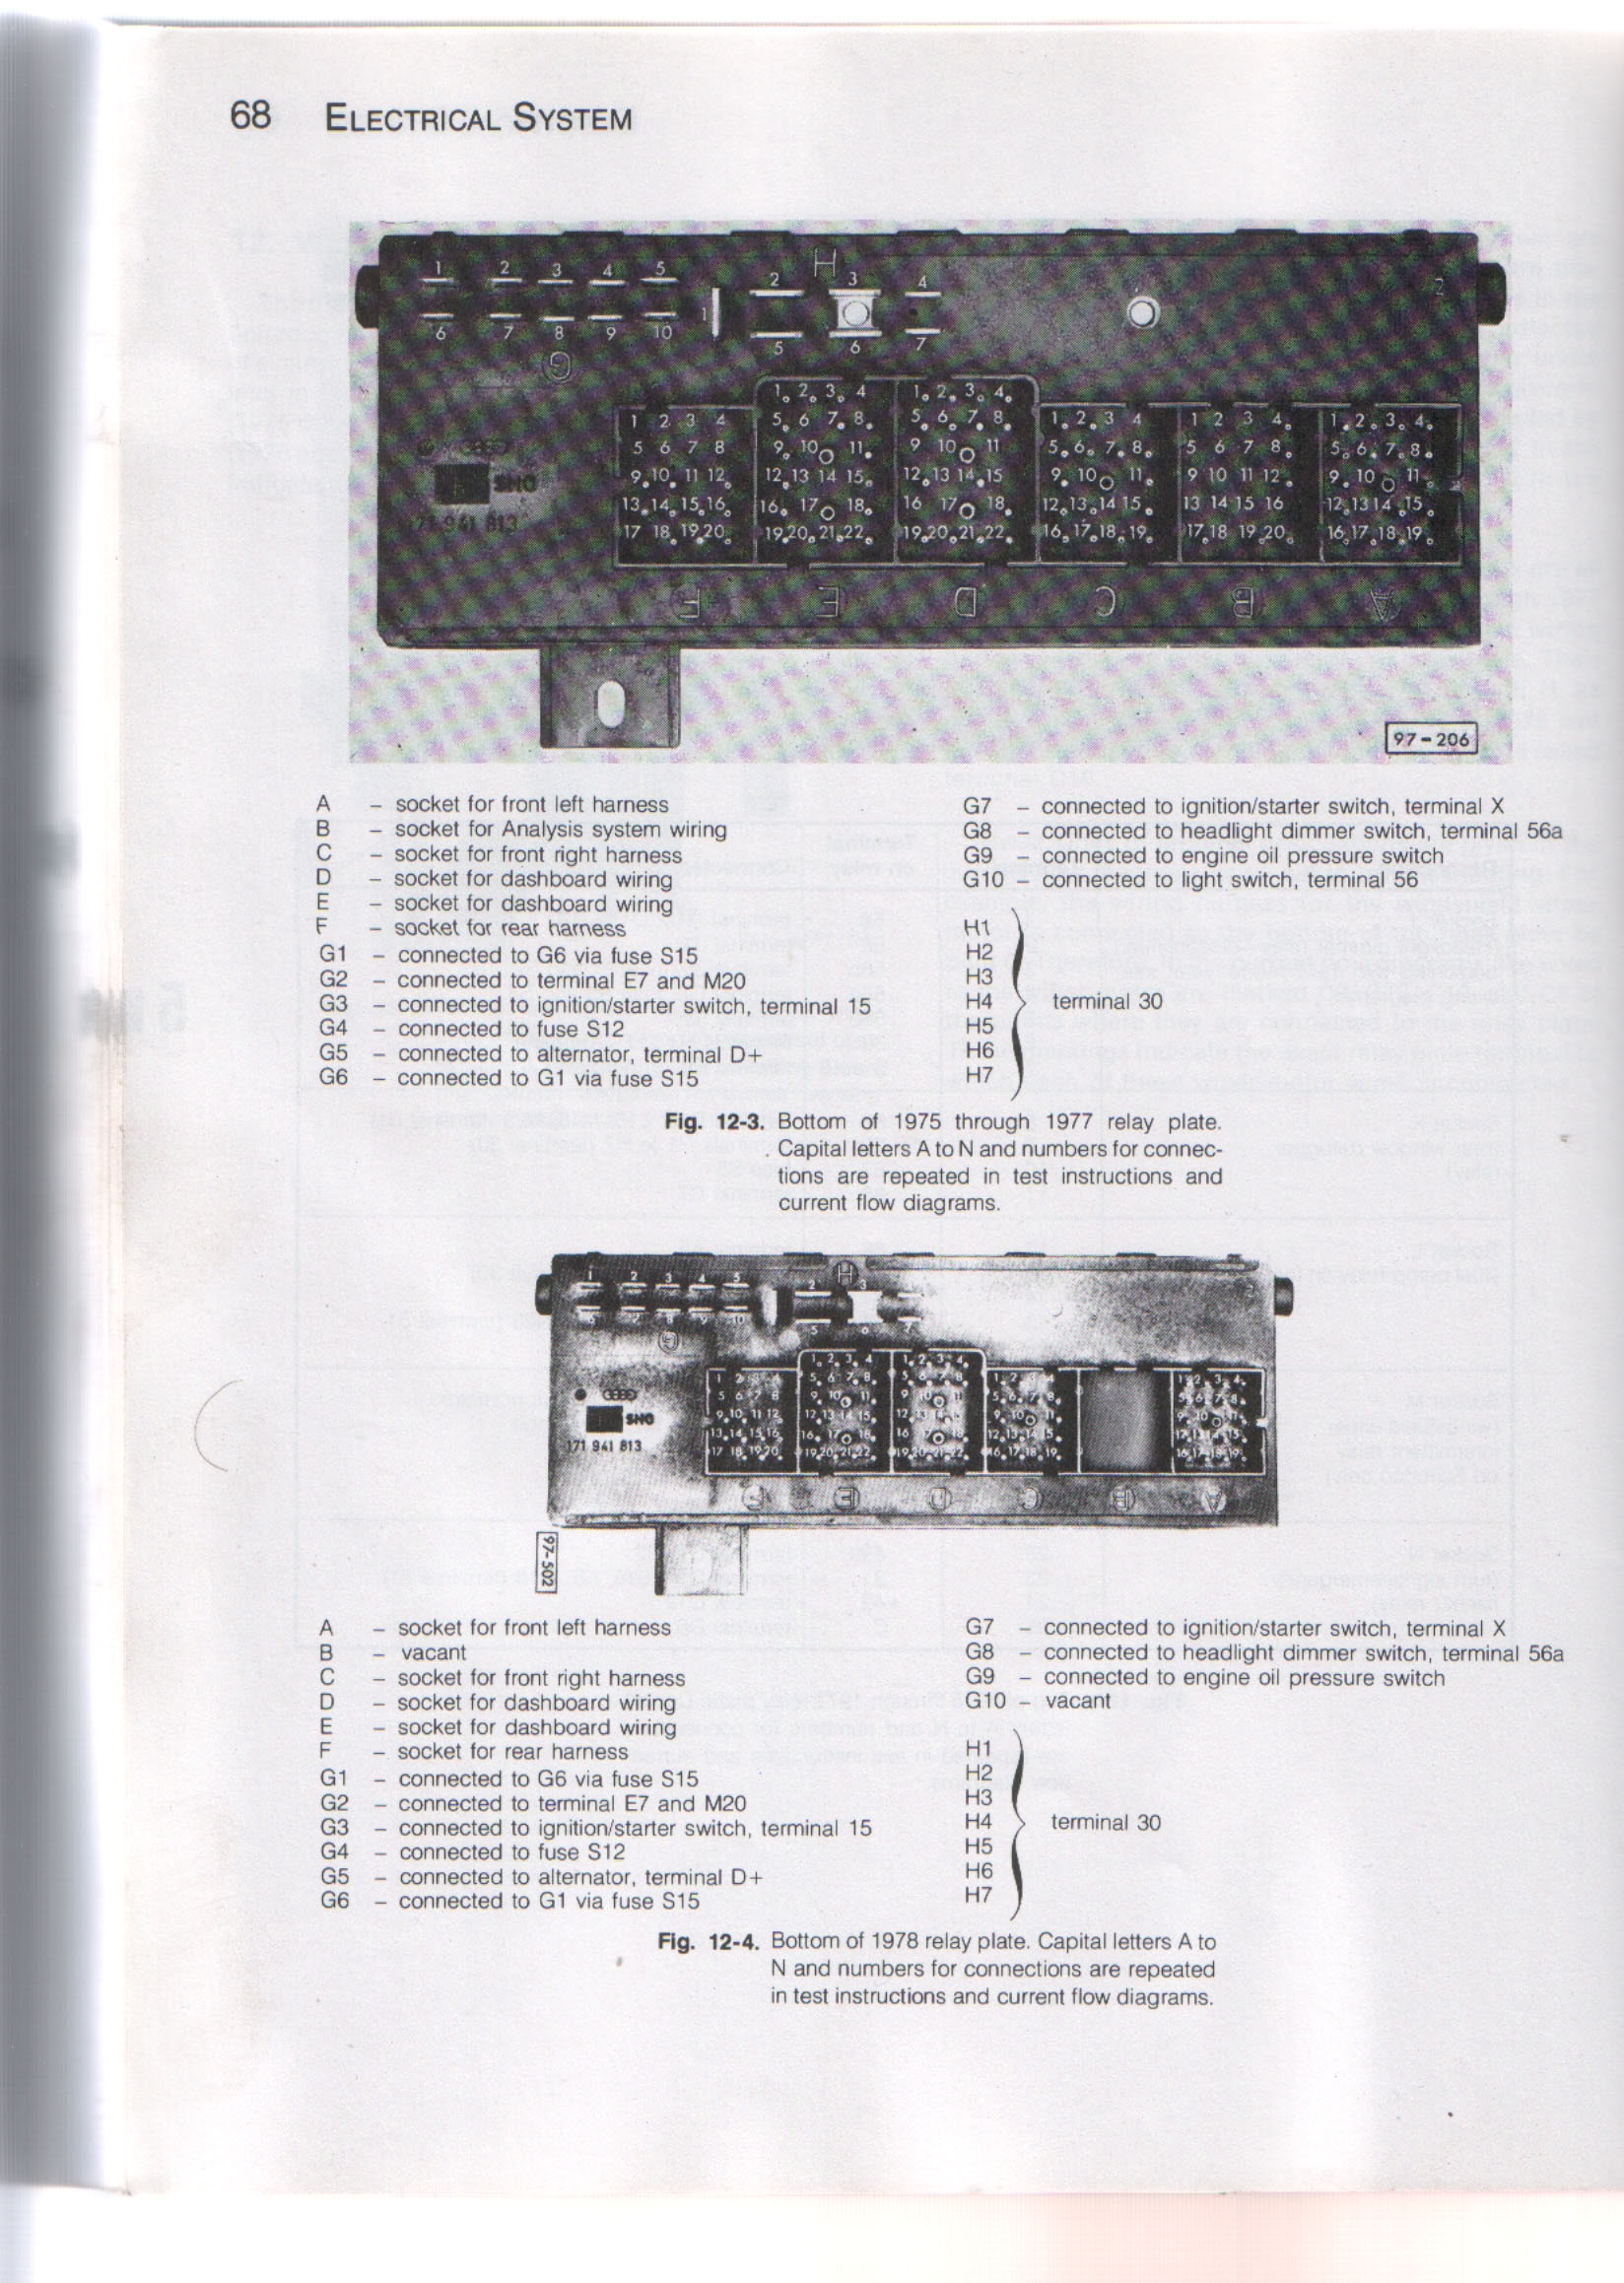 2009 vw rabbit fuse box diagram gAYbQTL 2007 vw rabbit fuse box diagram image details 1982 vw rabbit fuse box at suagrazia.org